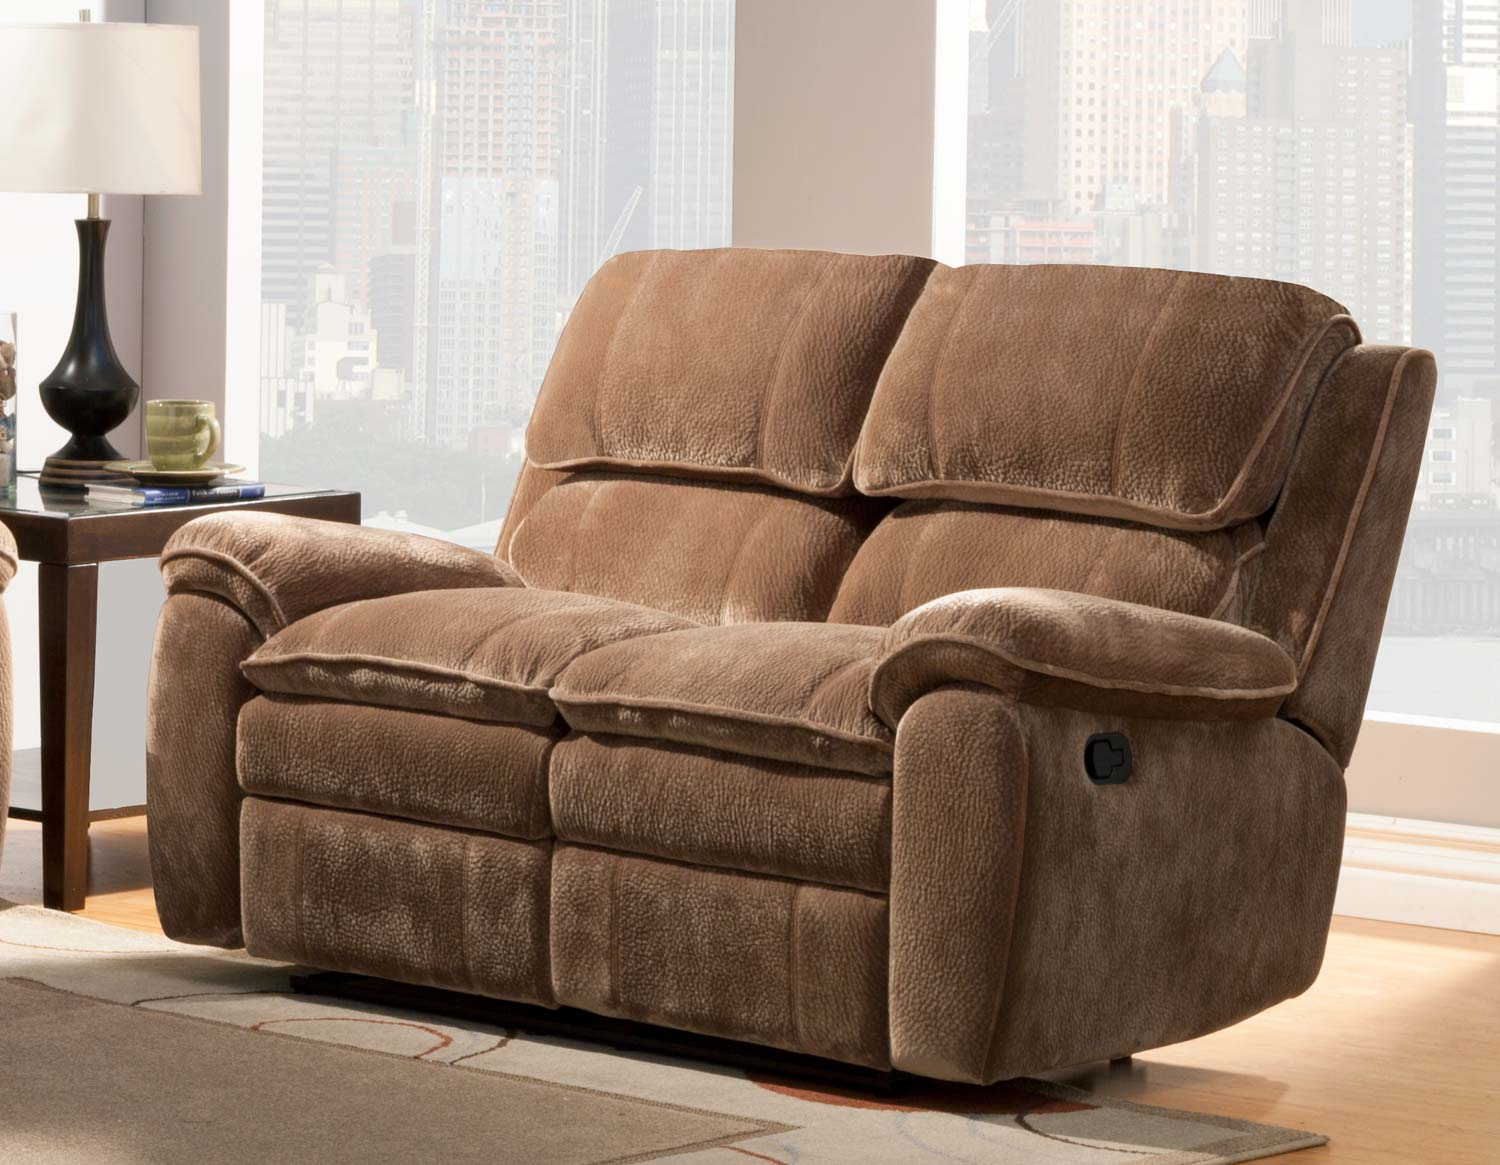 Homelegance Reilly Reclining Sofa Set Brown Textured